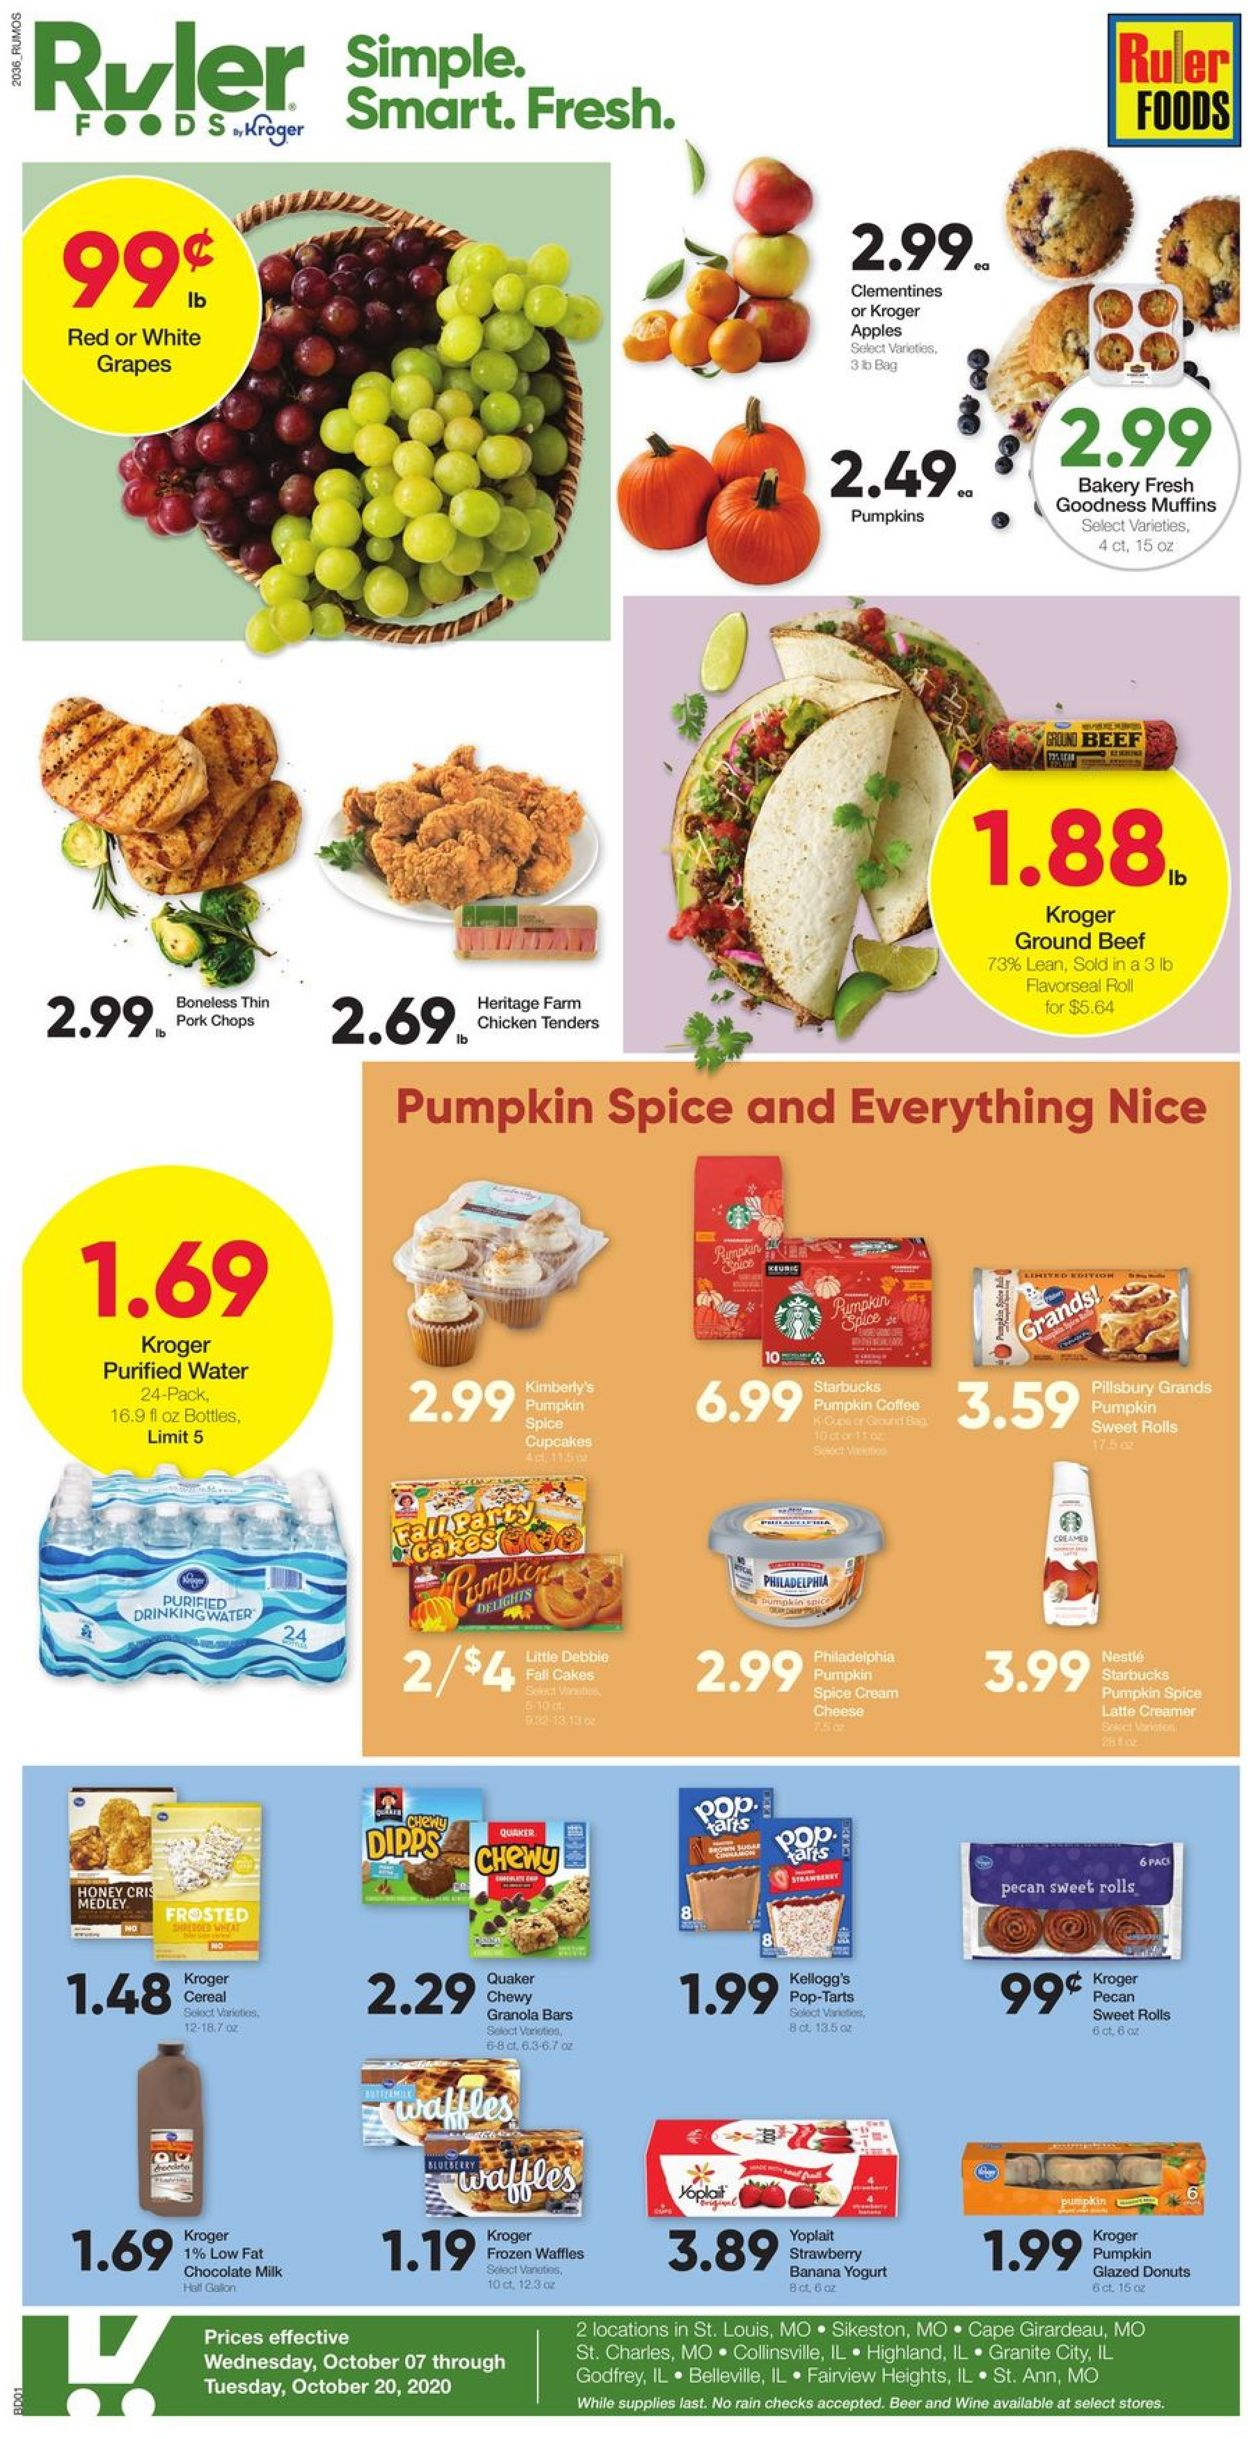 Ruler Foods Current Weekly Ad 10 07 10 20 2020 Frequent Ads Com